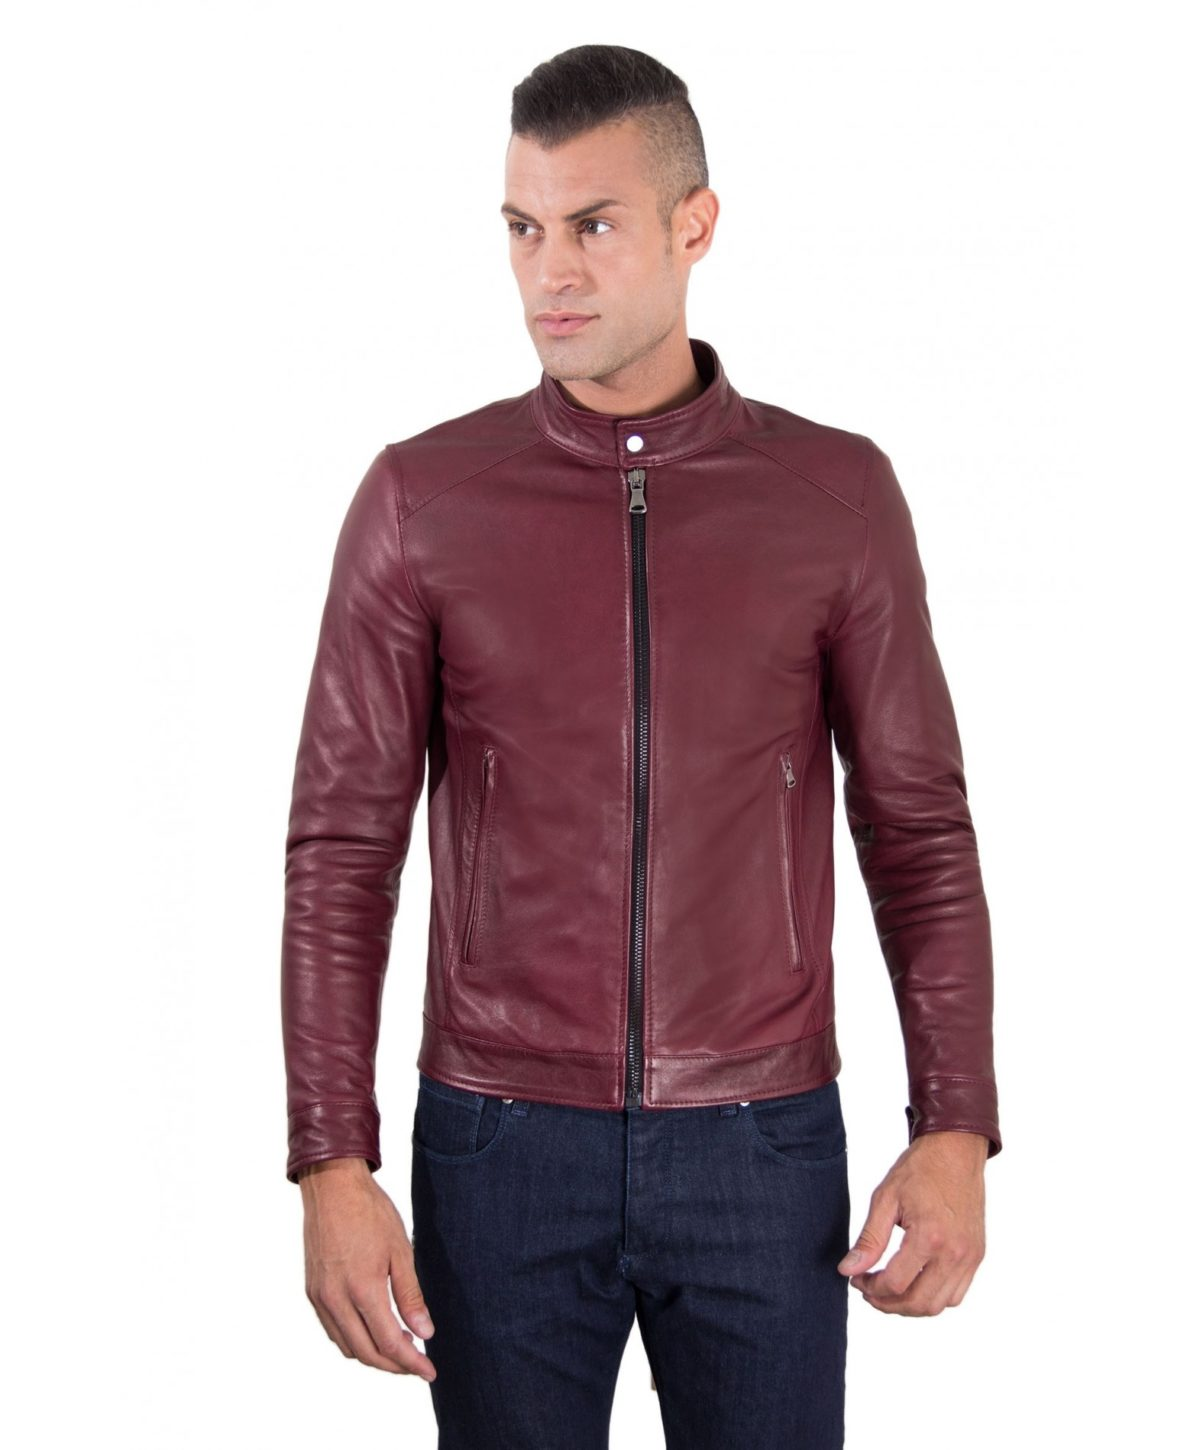 men-s-leather-jacket-korean-collar-two-pockets-red-purple-color-hamilton